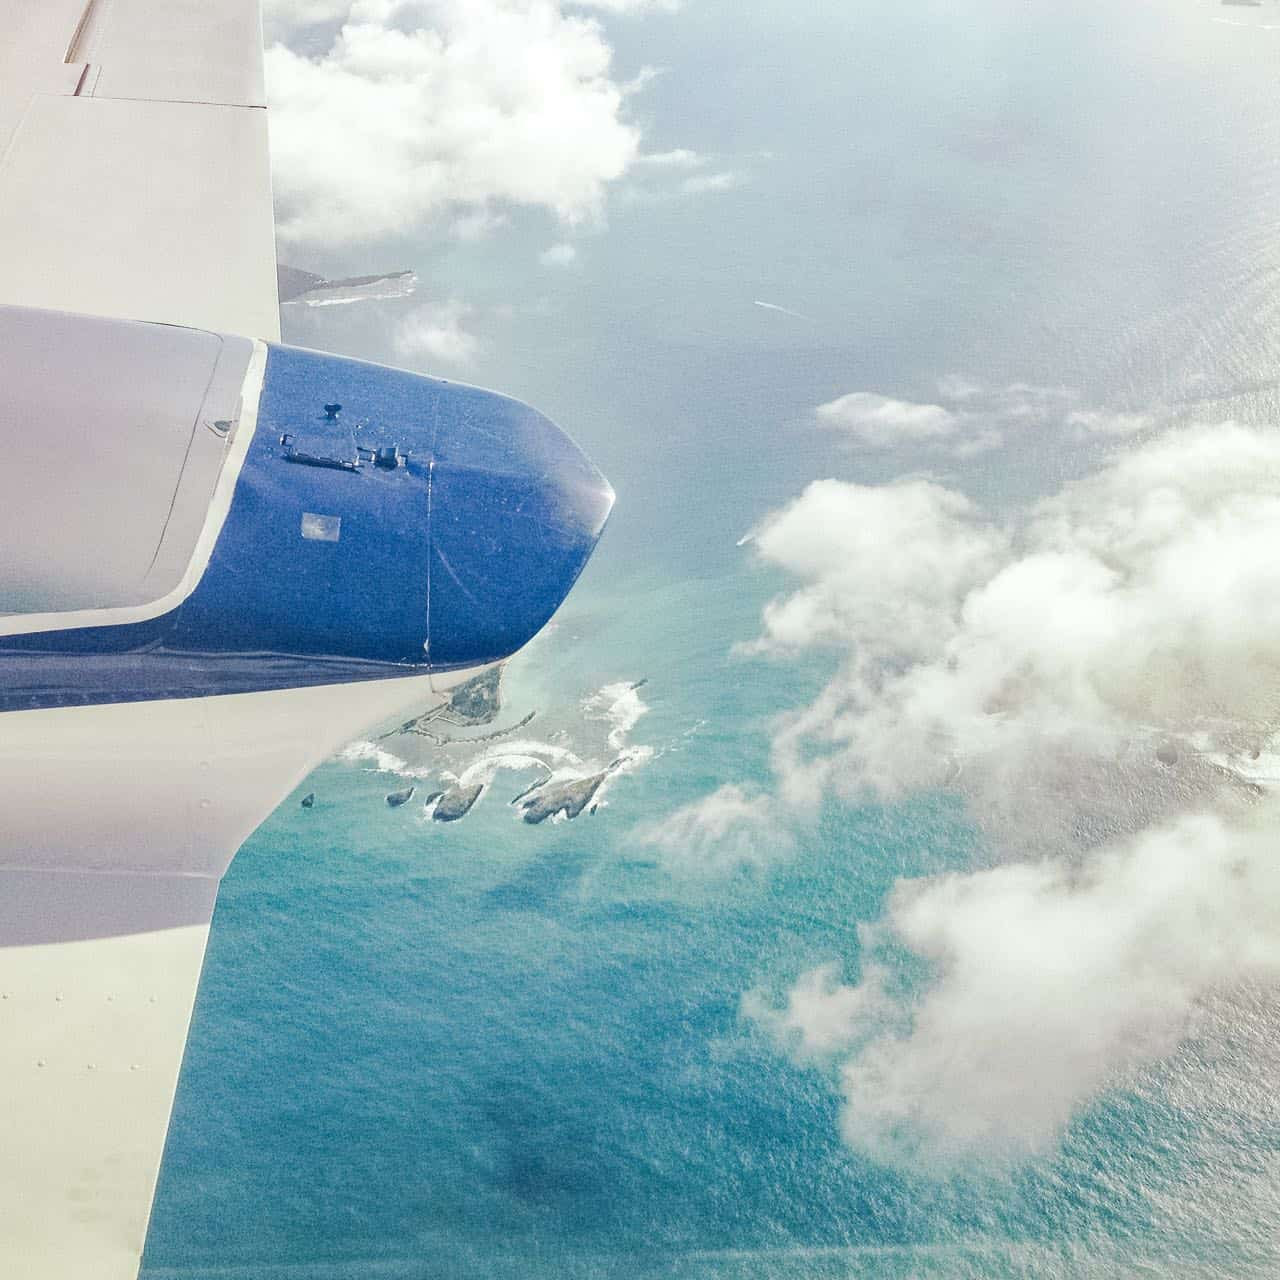 airplane etiquette: view out of the airplane window